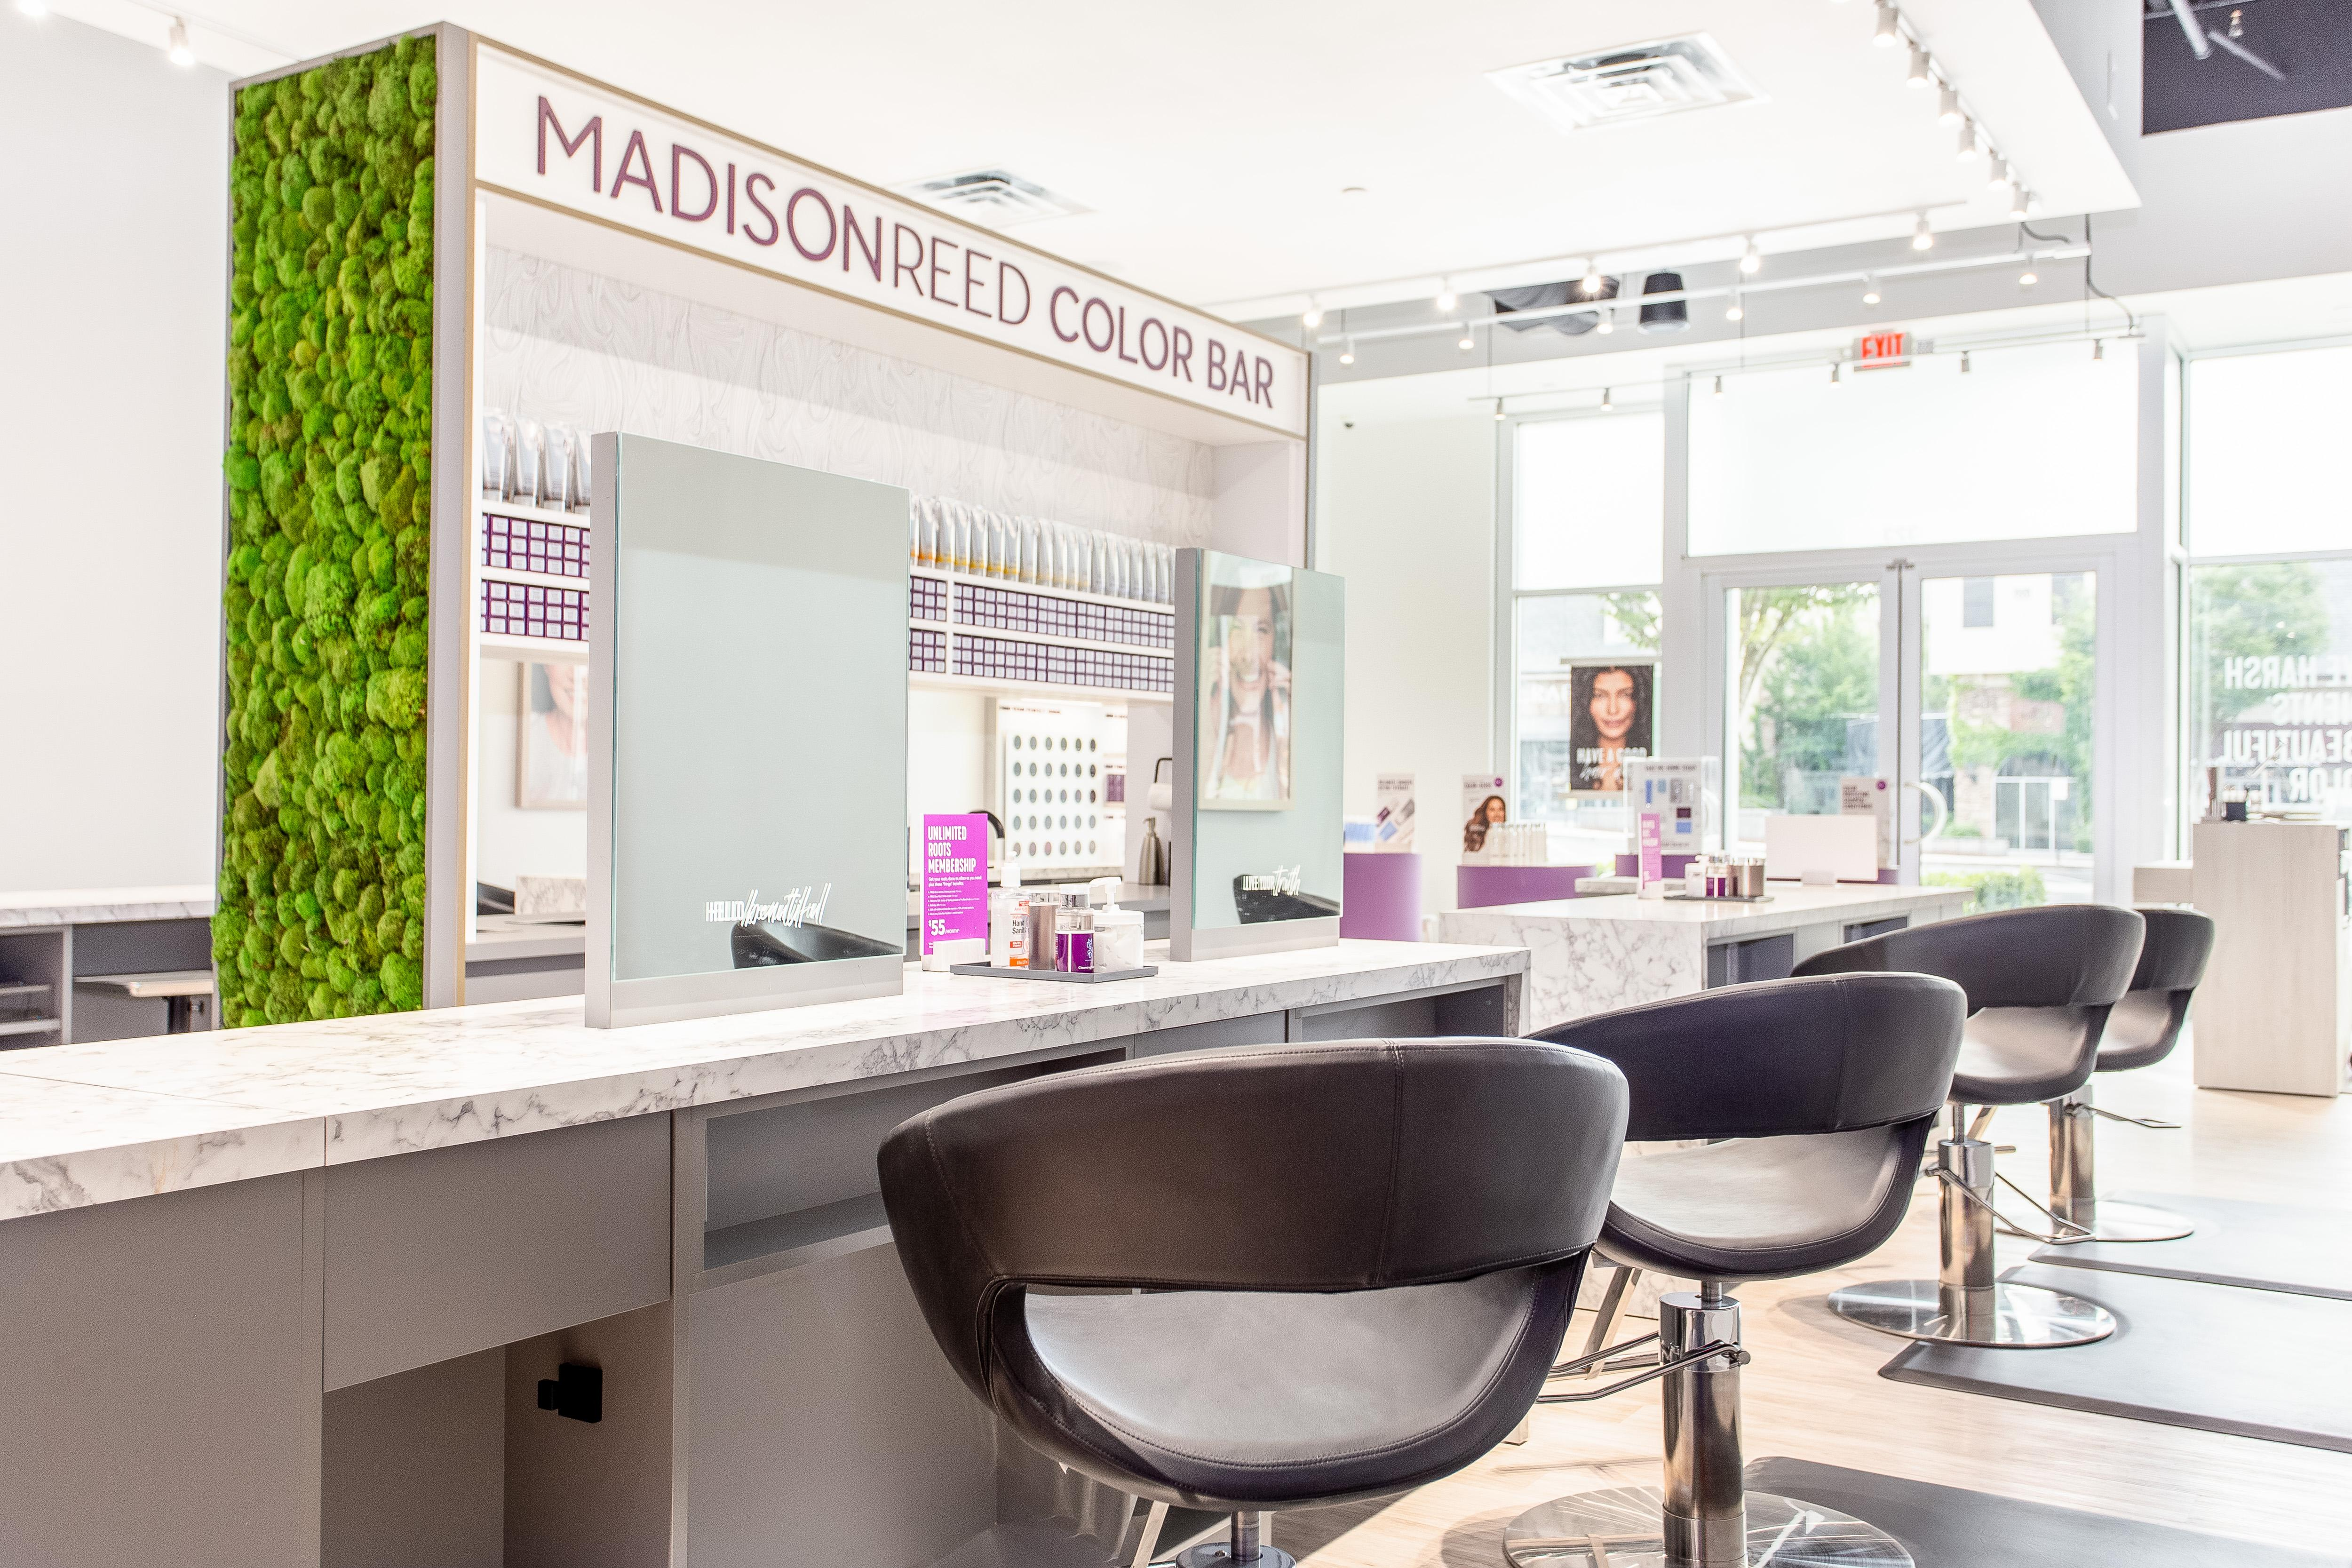 Interior Photo of Madison Reed Color Bar Peachtree Corners